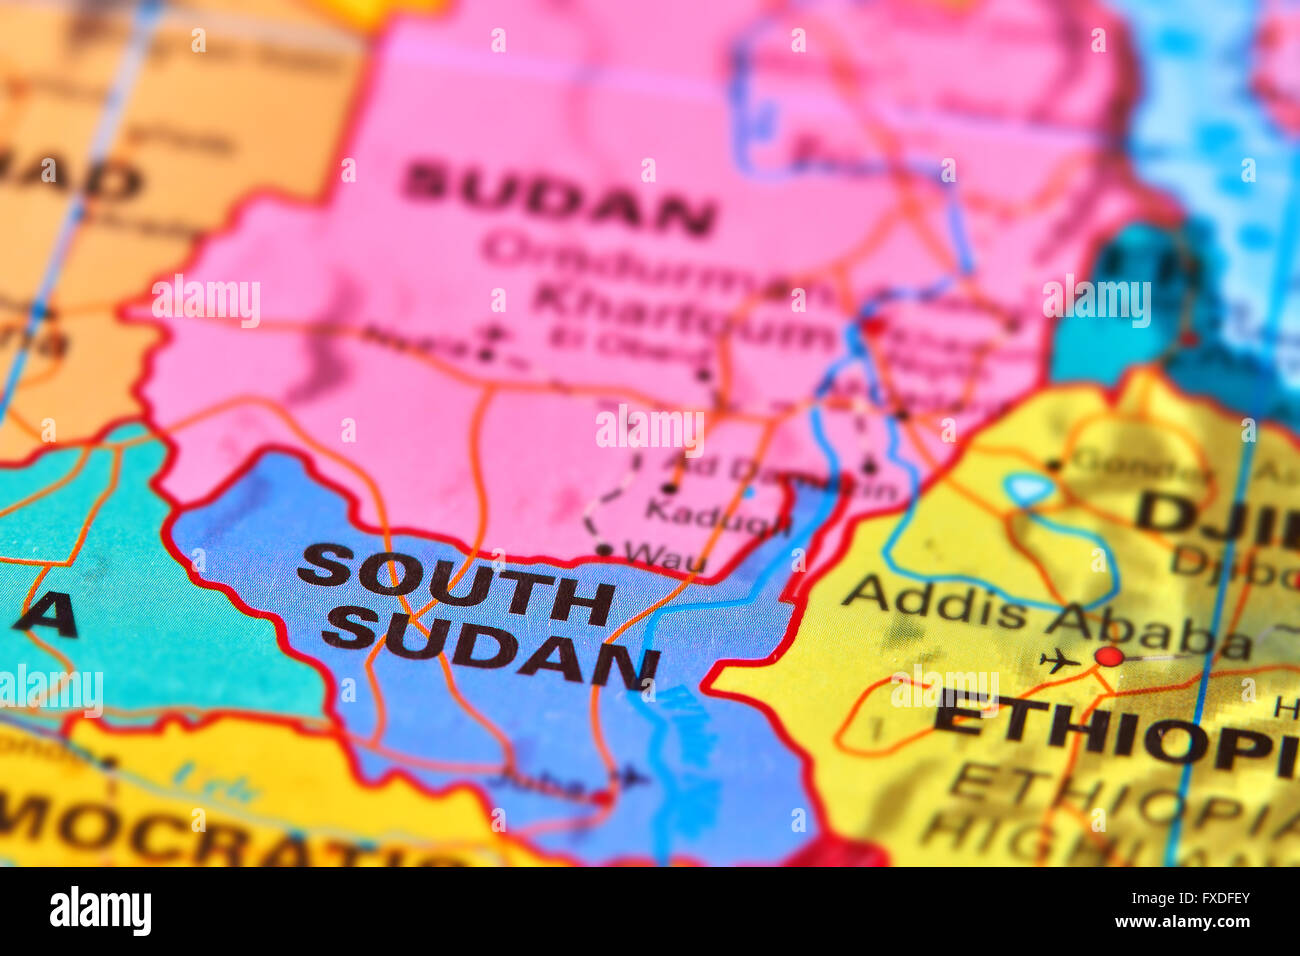 South Sudan Country in Africa on the World Map Stock Photo ...